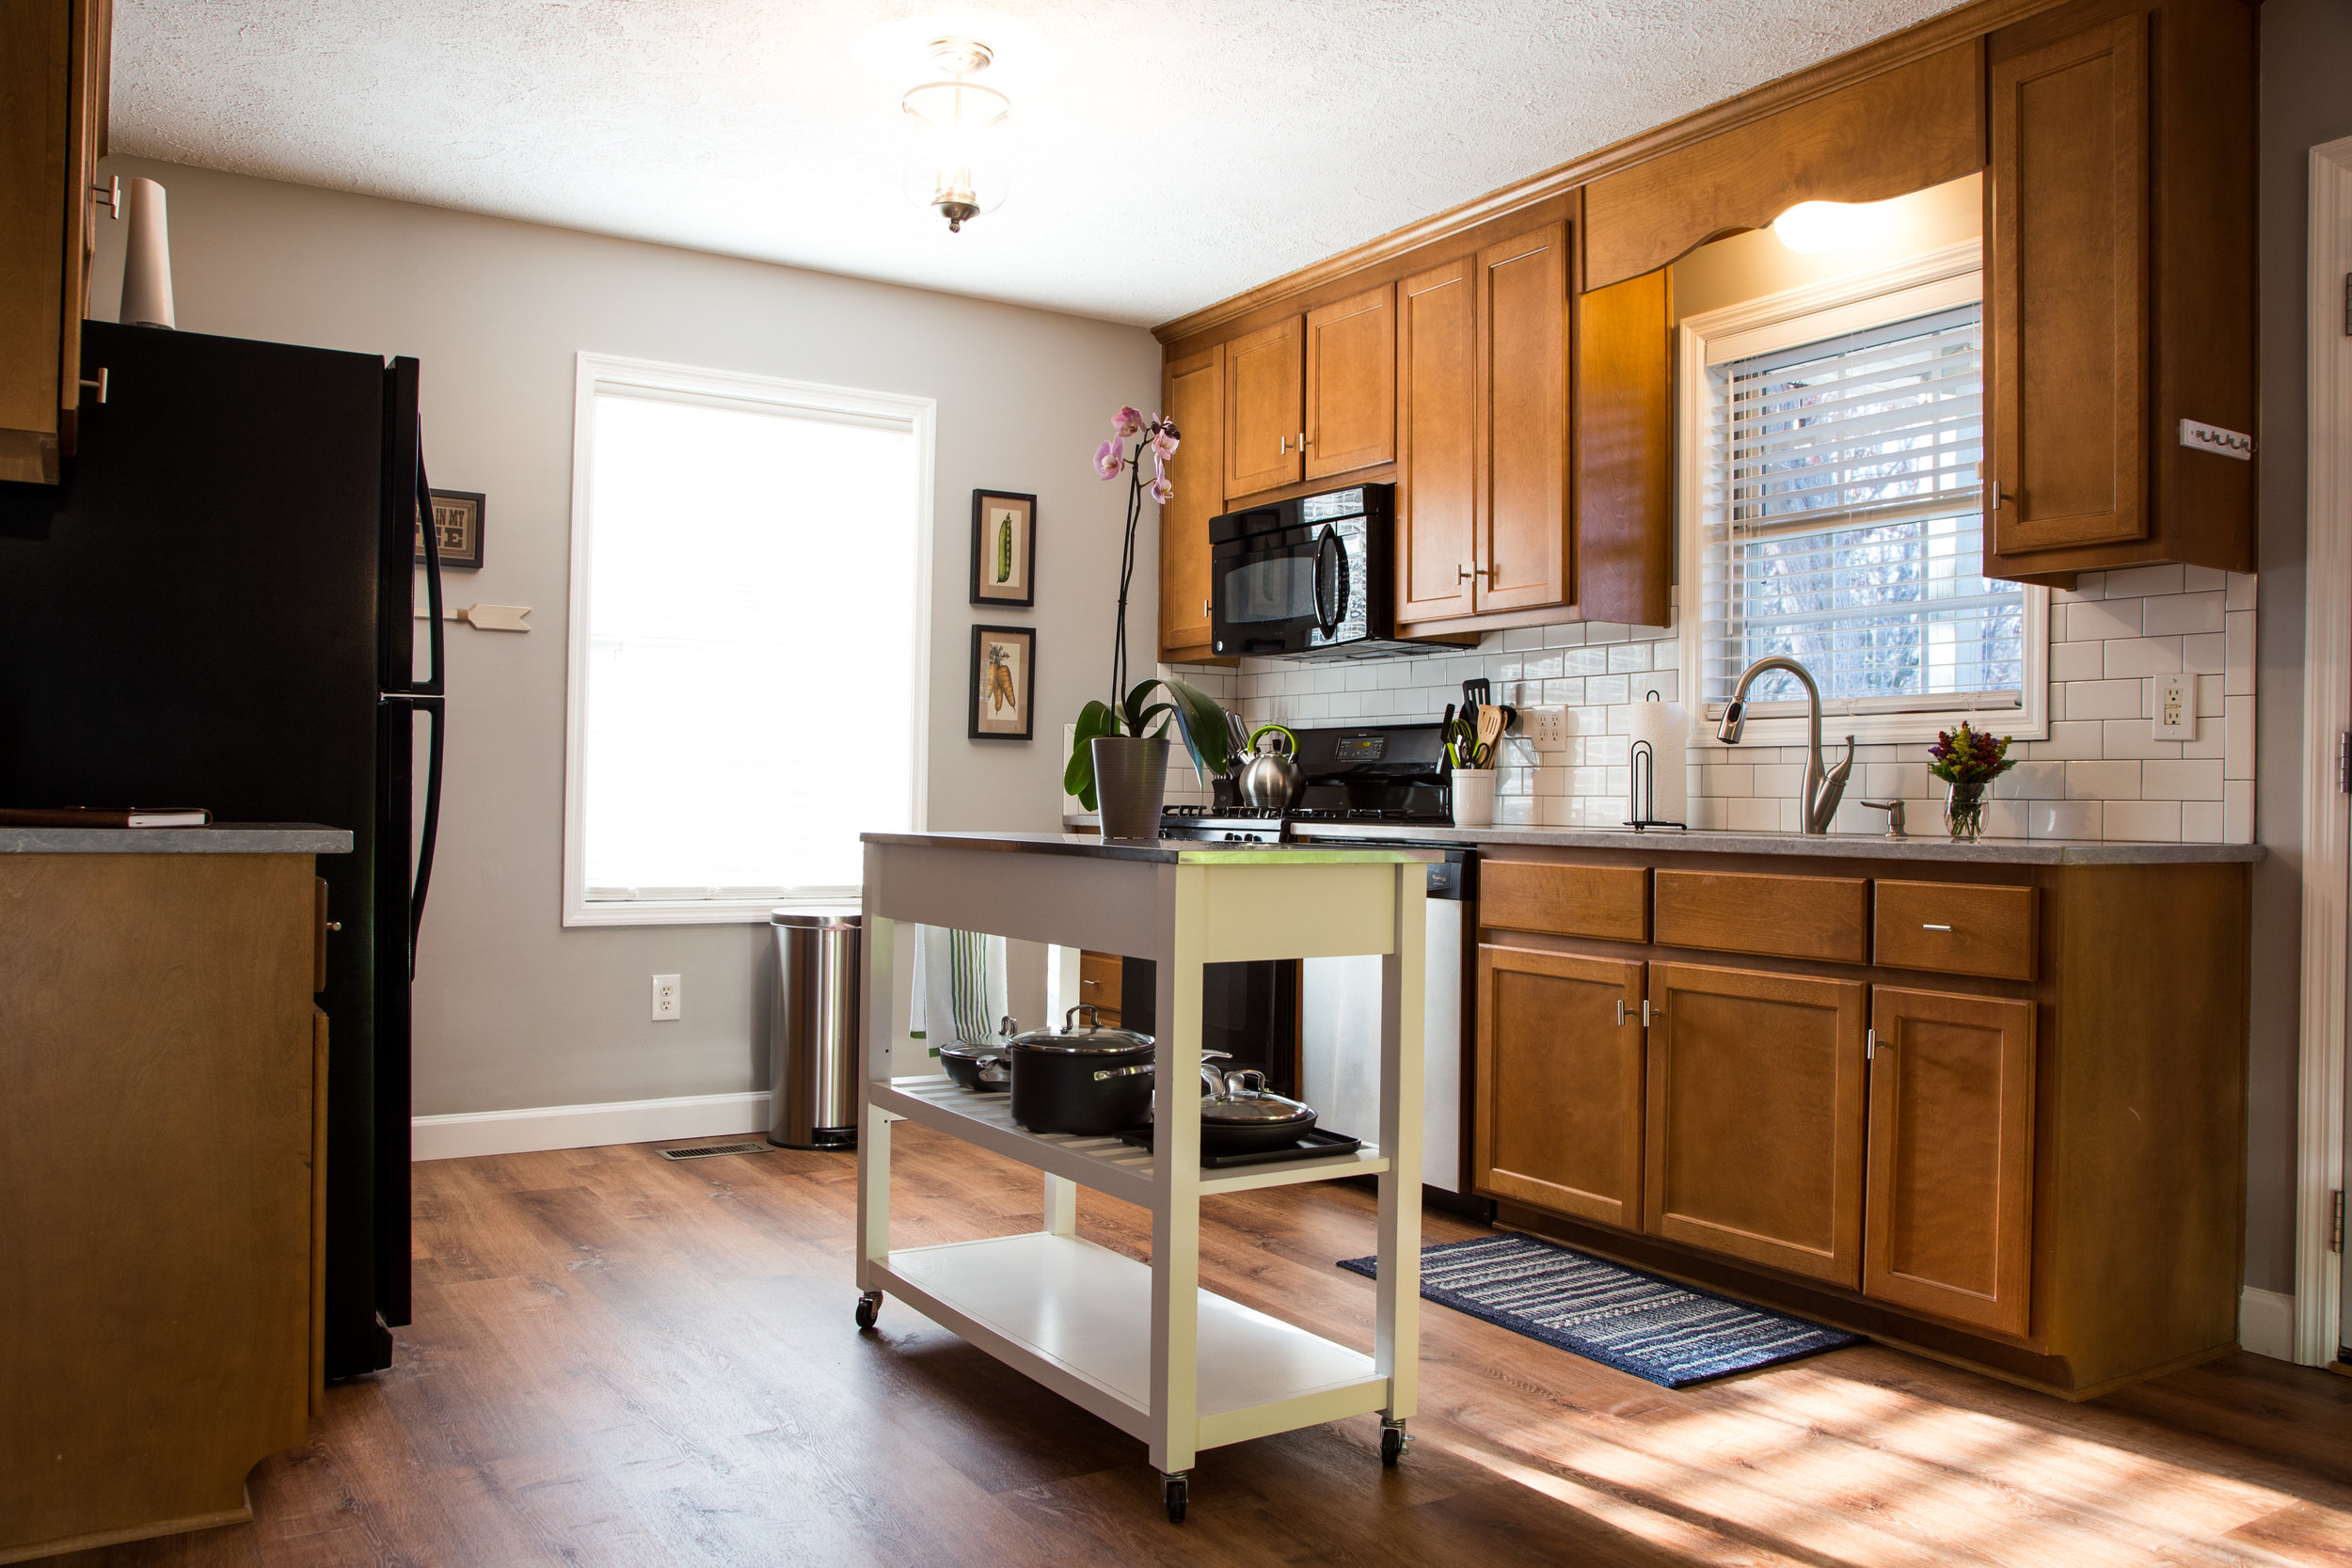 Large, update, and fully equipped kitchen.